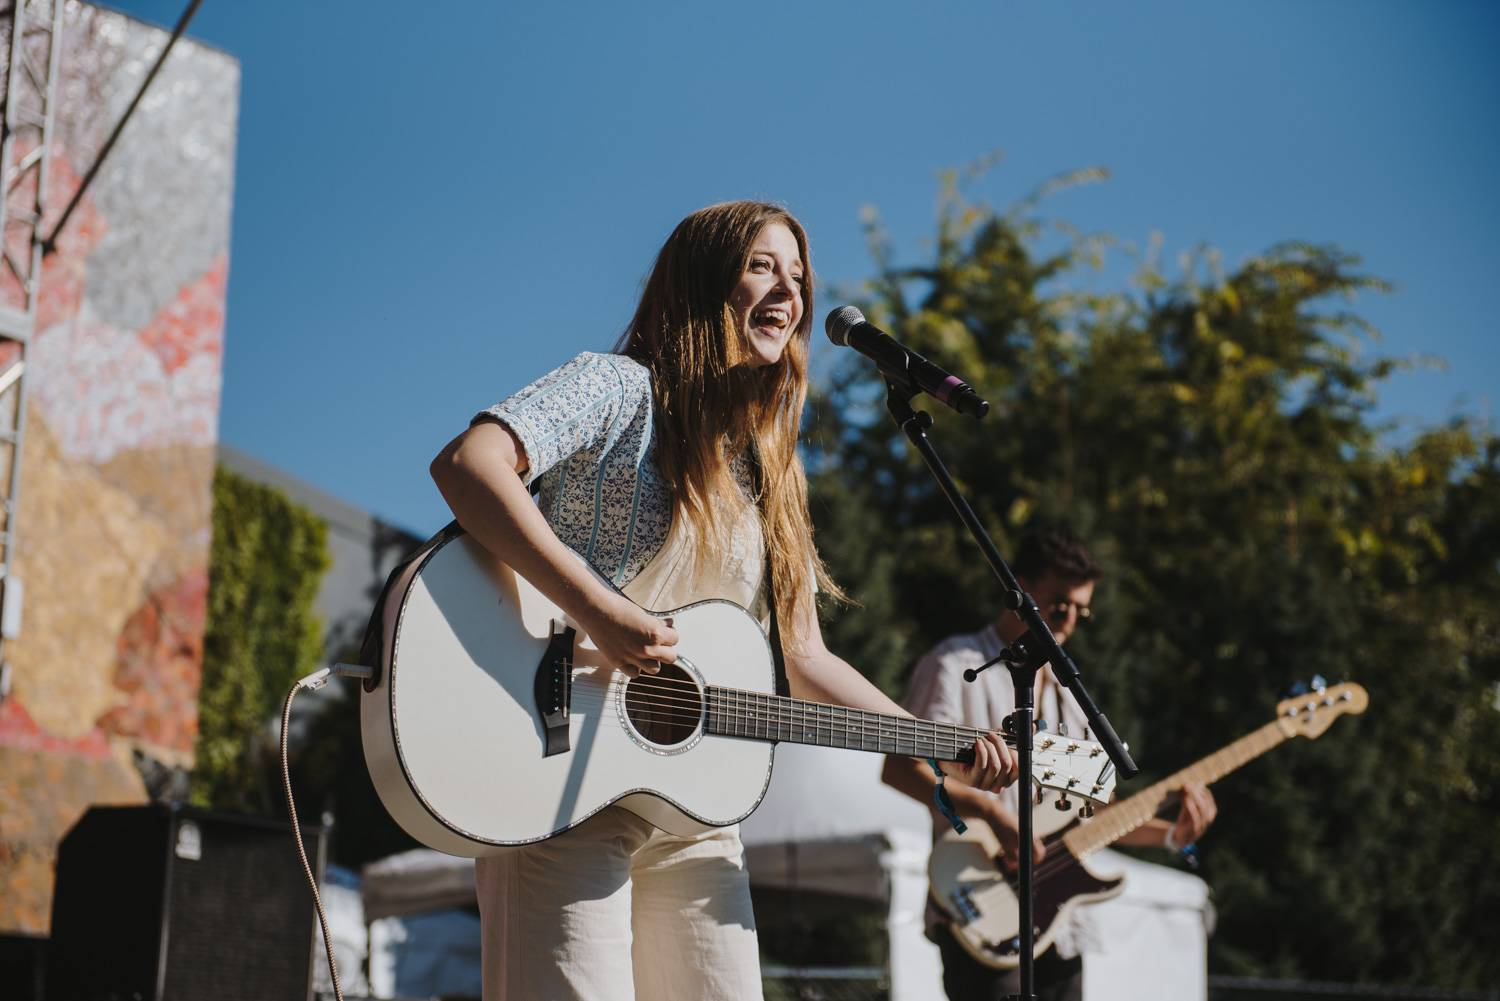 Jade Bird at the Bumbershoot Music Festival 2018 - Day 3. Sept 2 2018. Pavel Boiko photo.